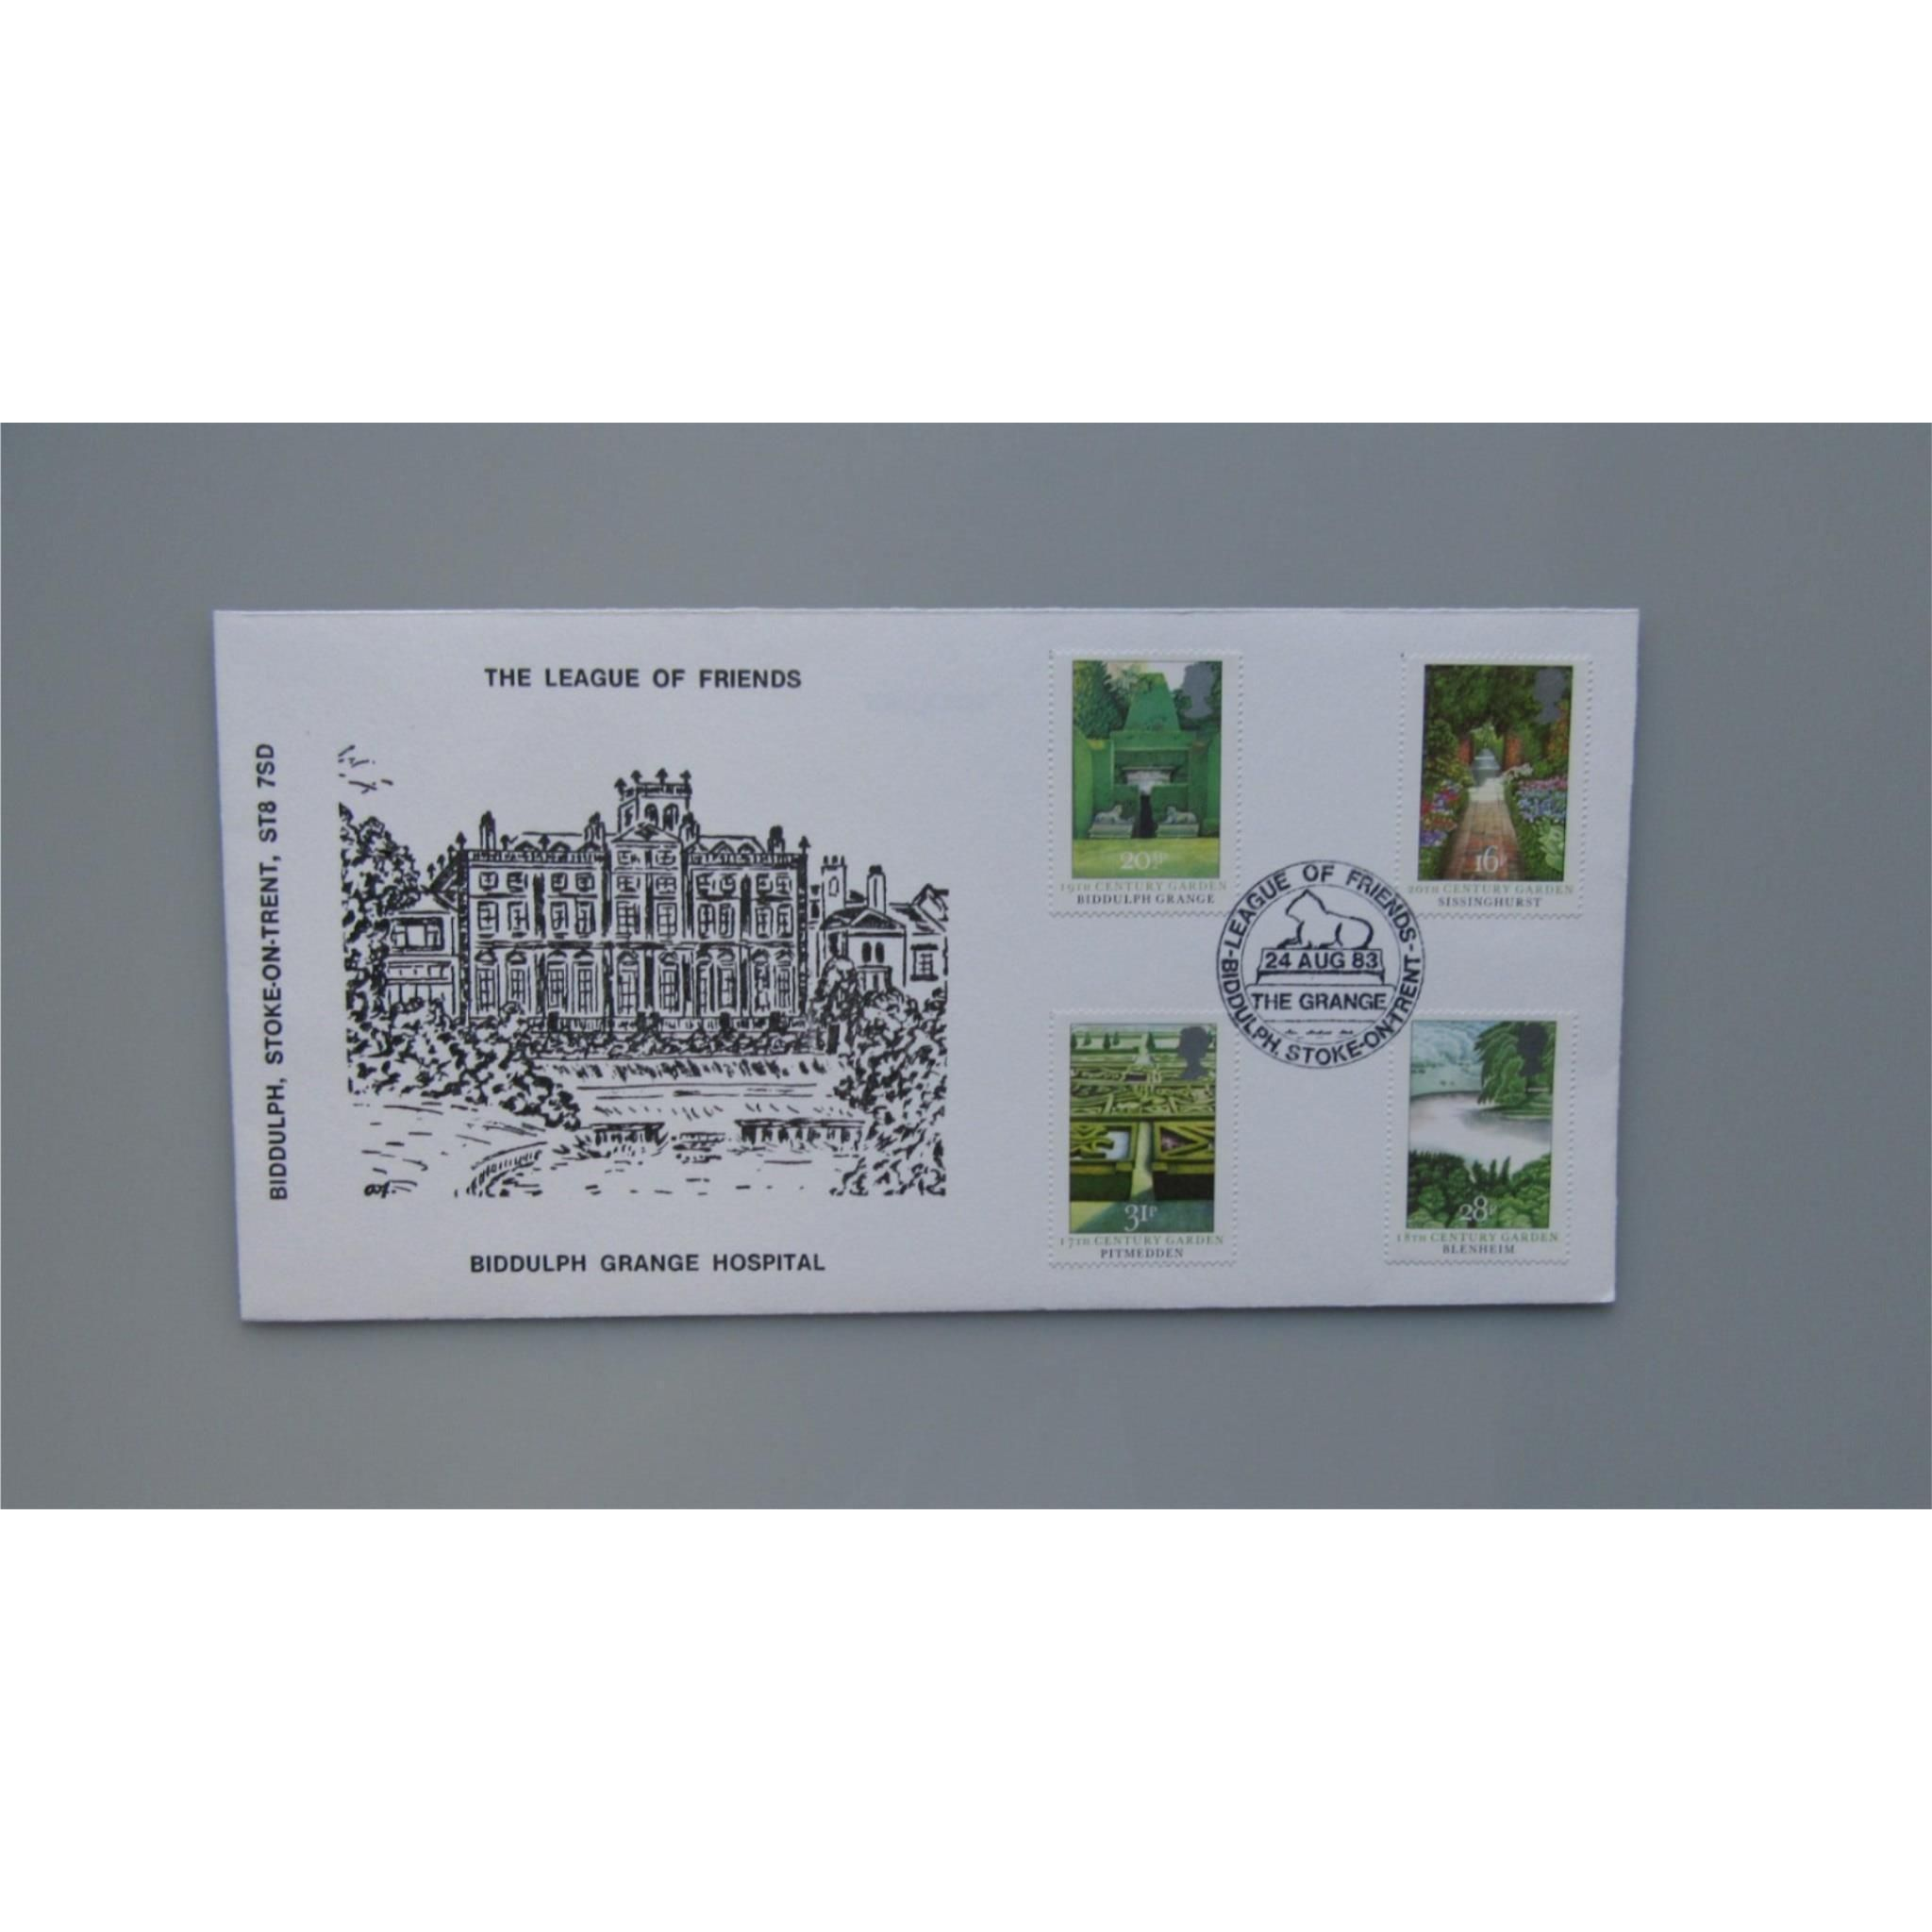 1983 G.B Official FDC British Gardens PM League of Friends, The Grange, Biddulph  #stampcollecting #philately #collector #hobbies #ukcoverlover #postagestamps